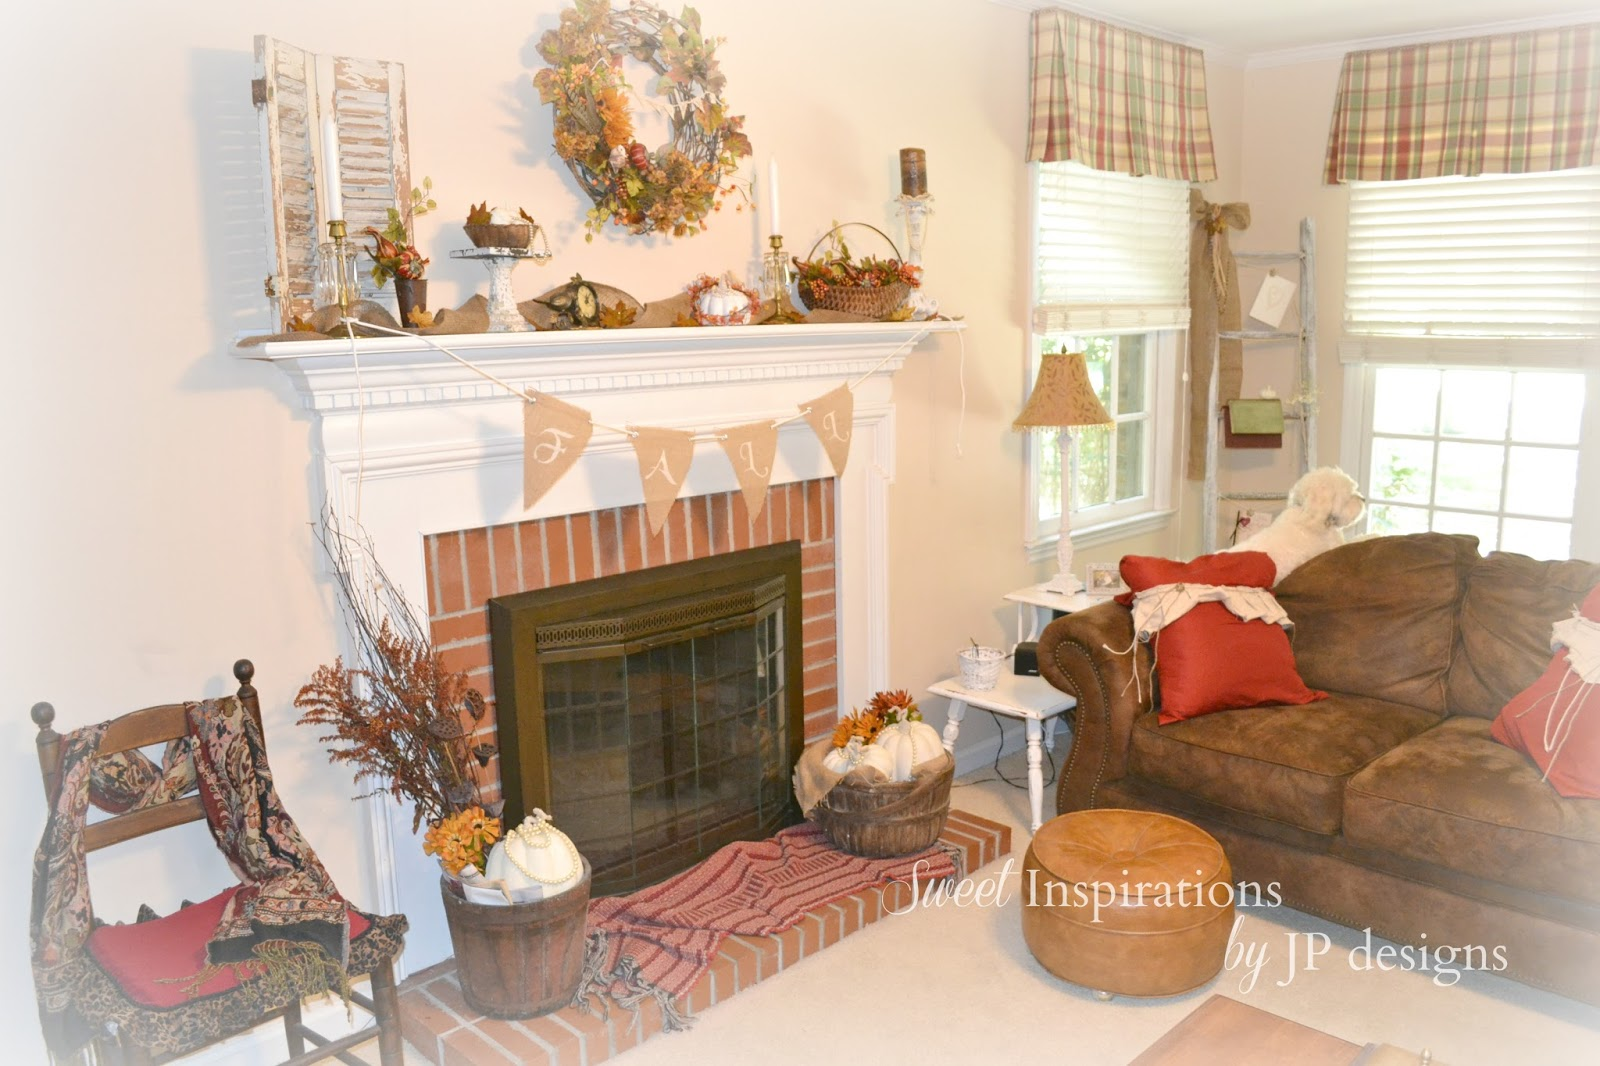 sweet inspirations by jp designs our fall mantel in our carolina home